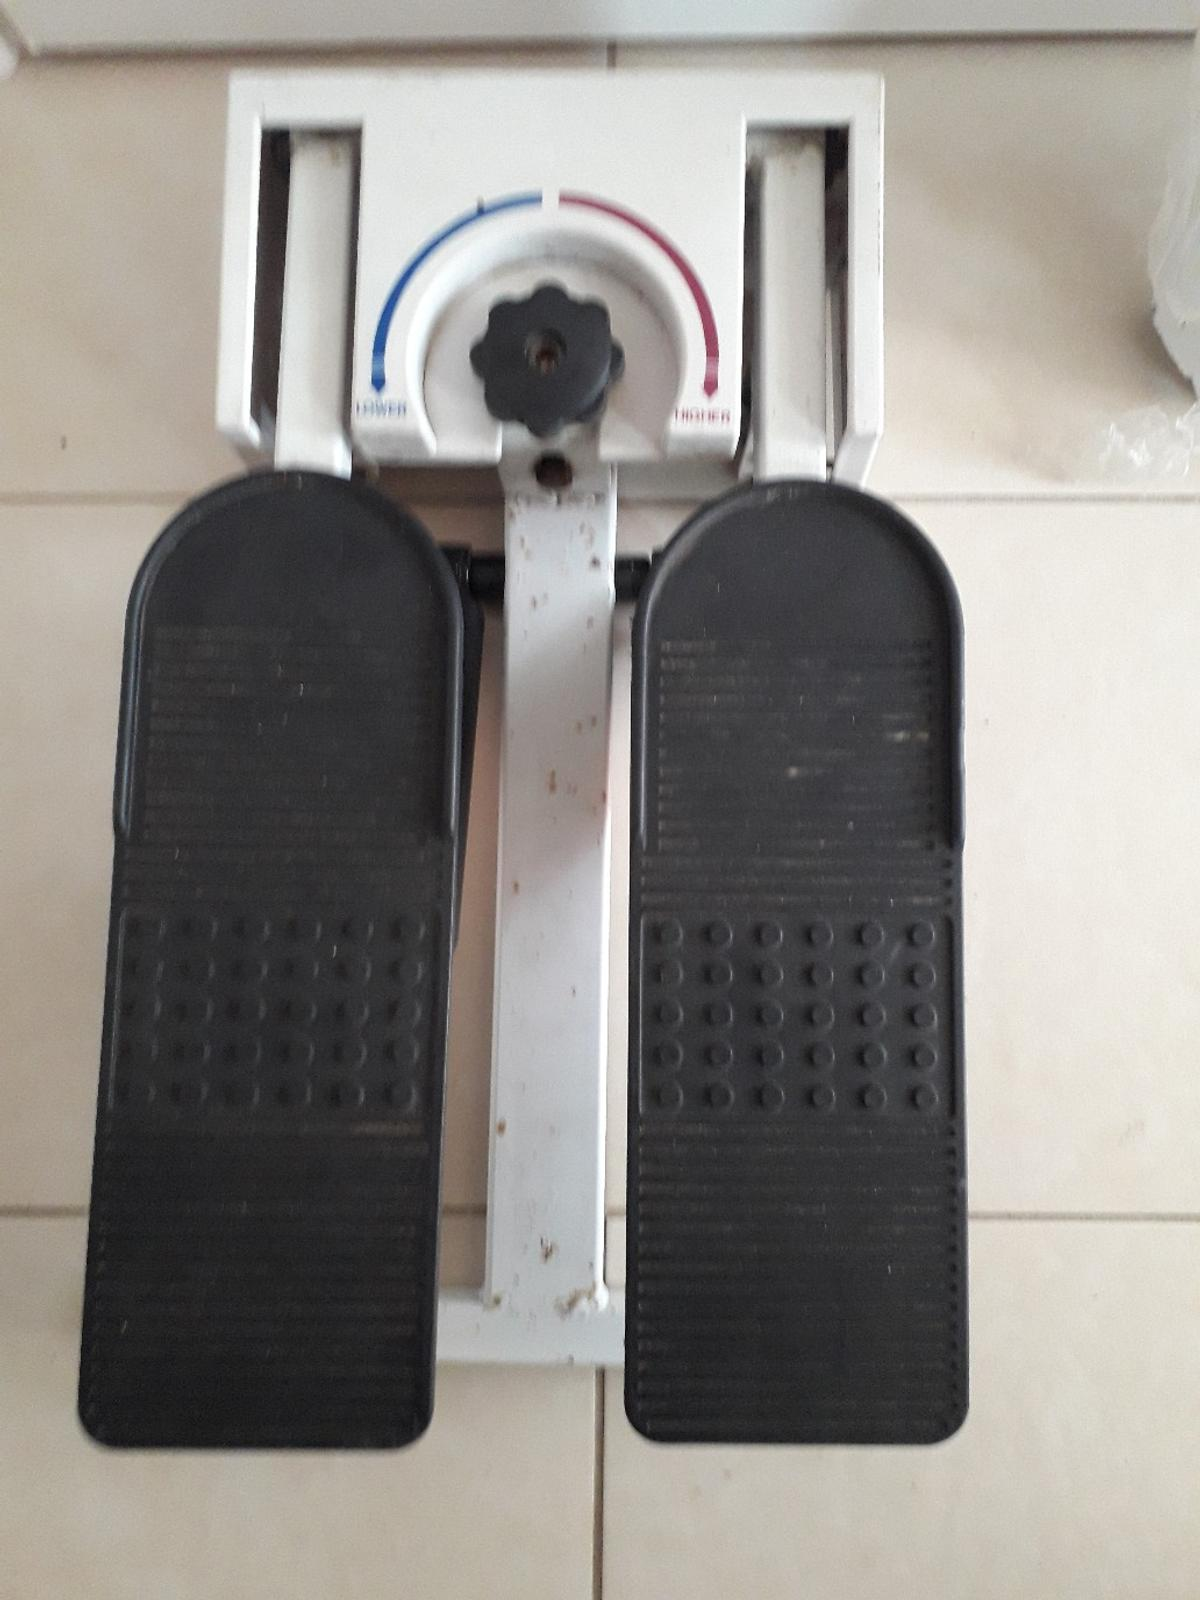 exerciser stepper in working order 5.00 pounds no offers see pictures